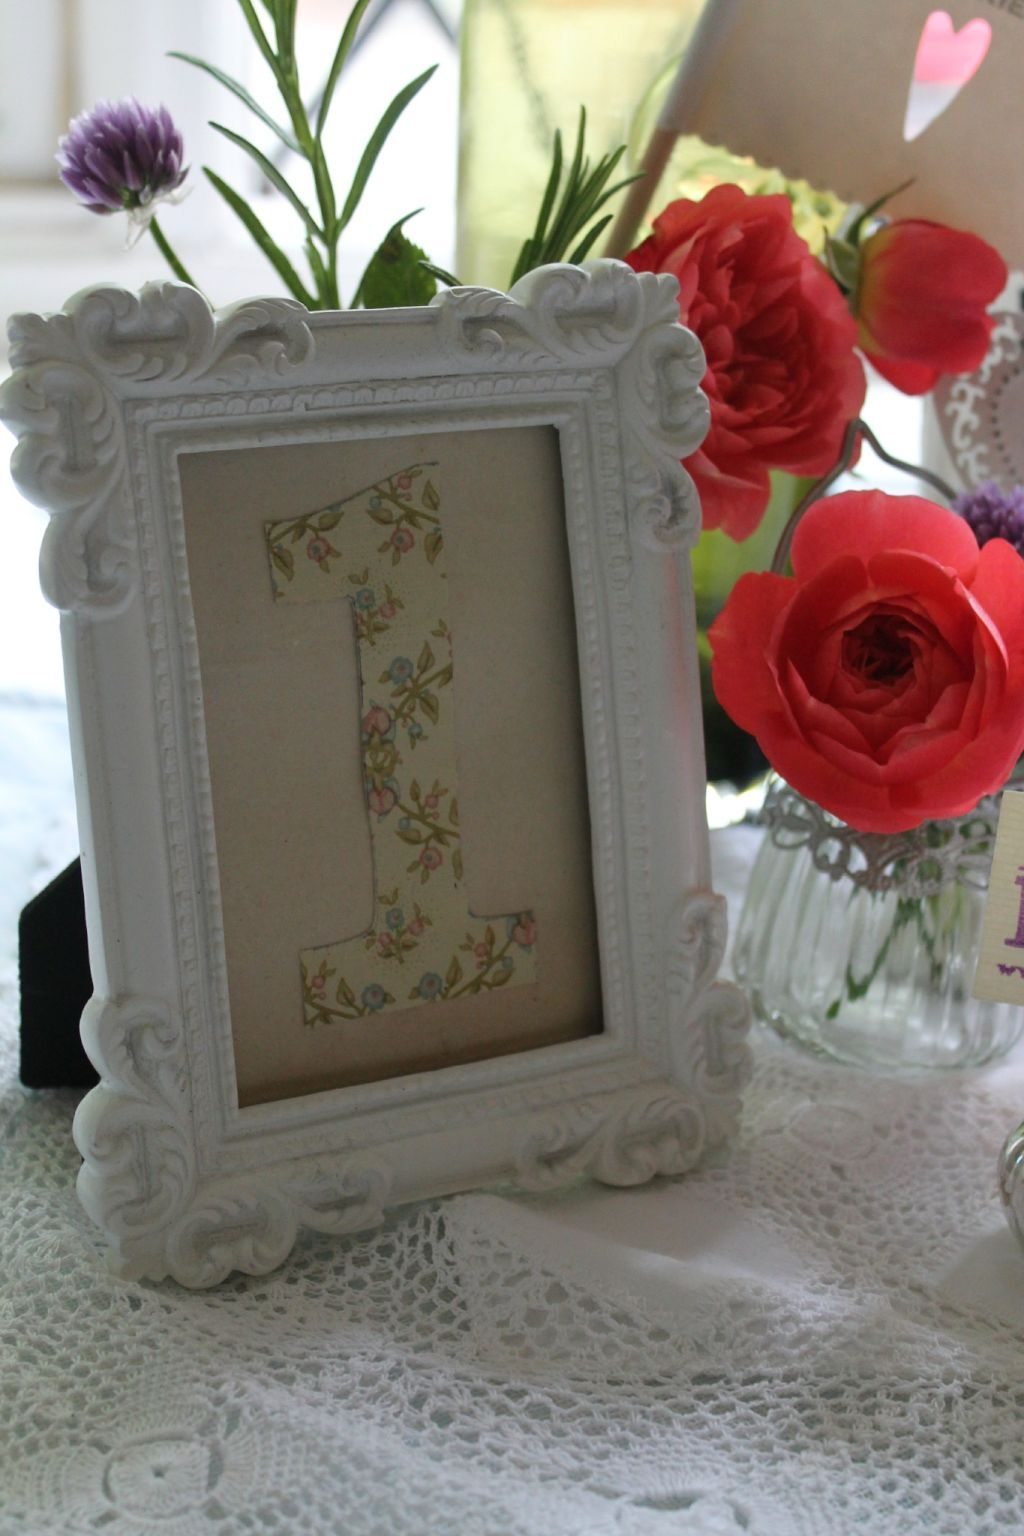 Tittlemouse on | Pinterest | Table numbers, Wedding tables and ...